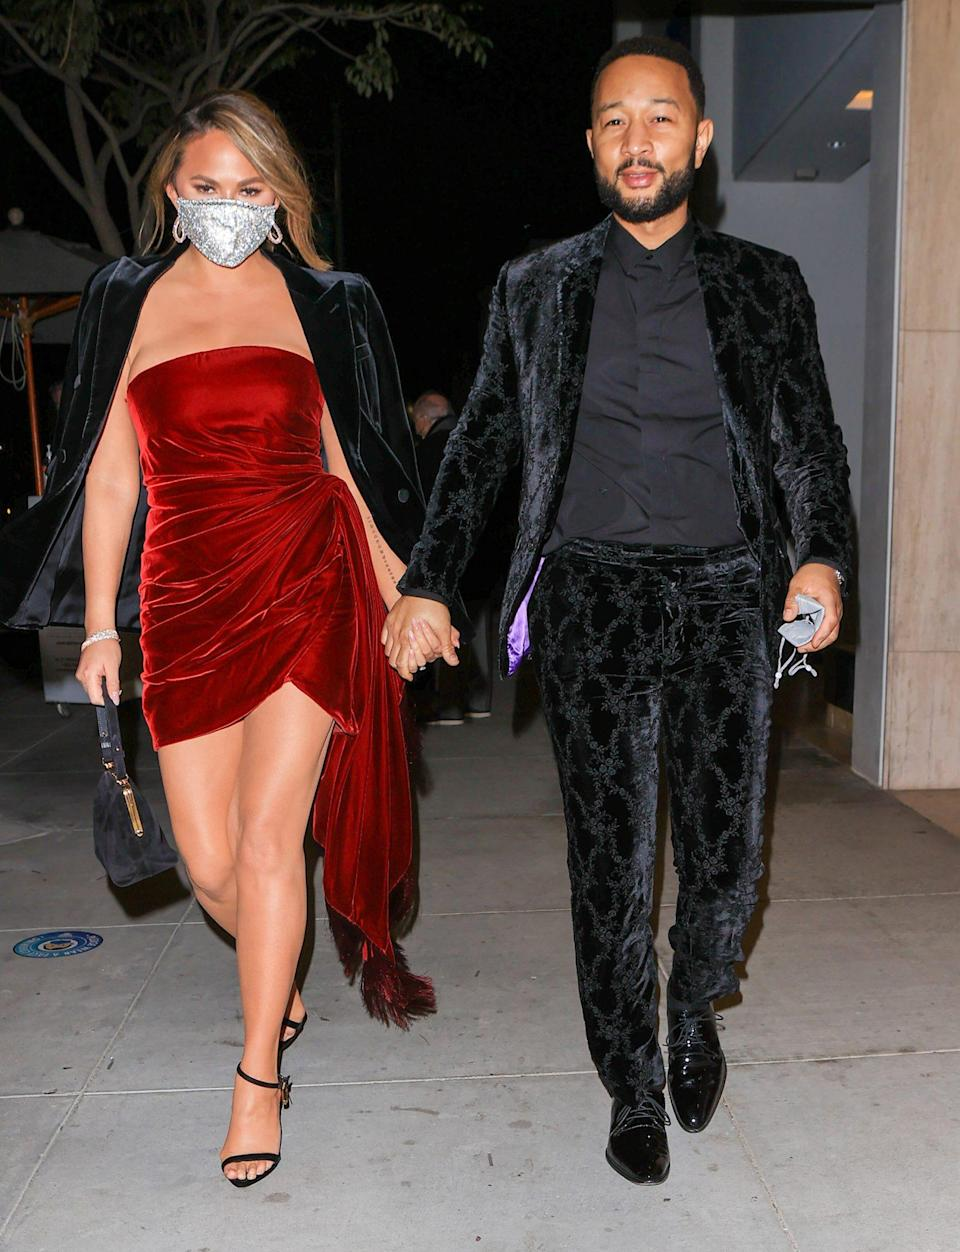 <p>After his Grammys win on Sunday night, a dressed-up Chrissy Teigen and John Legend head out in L.A. </p>